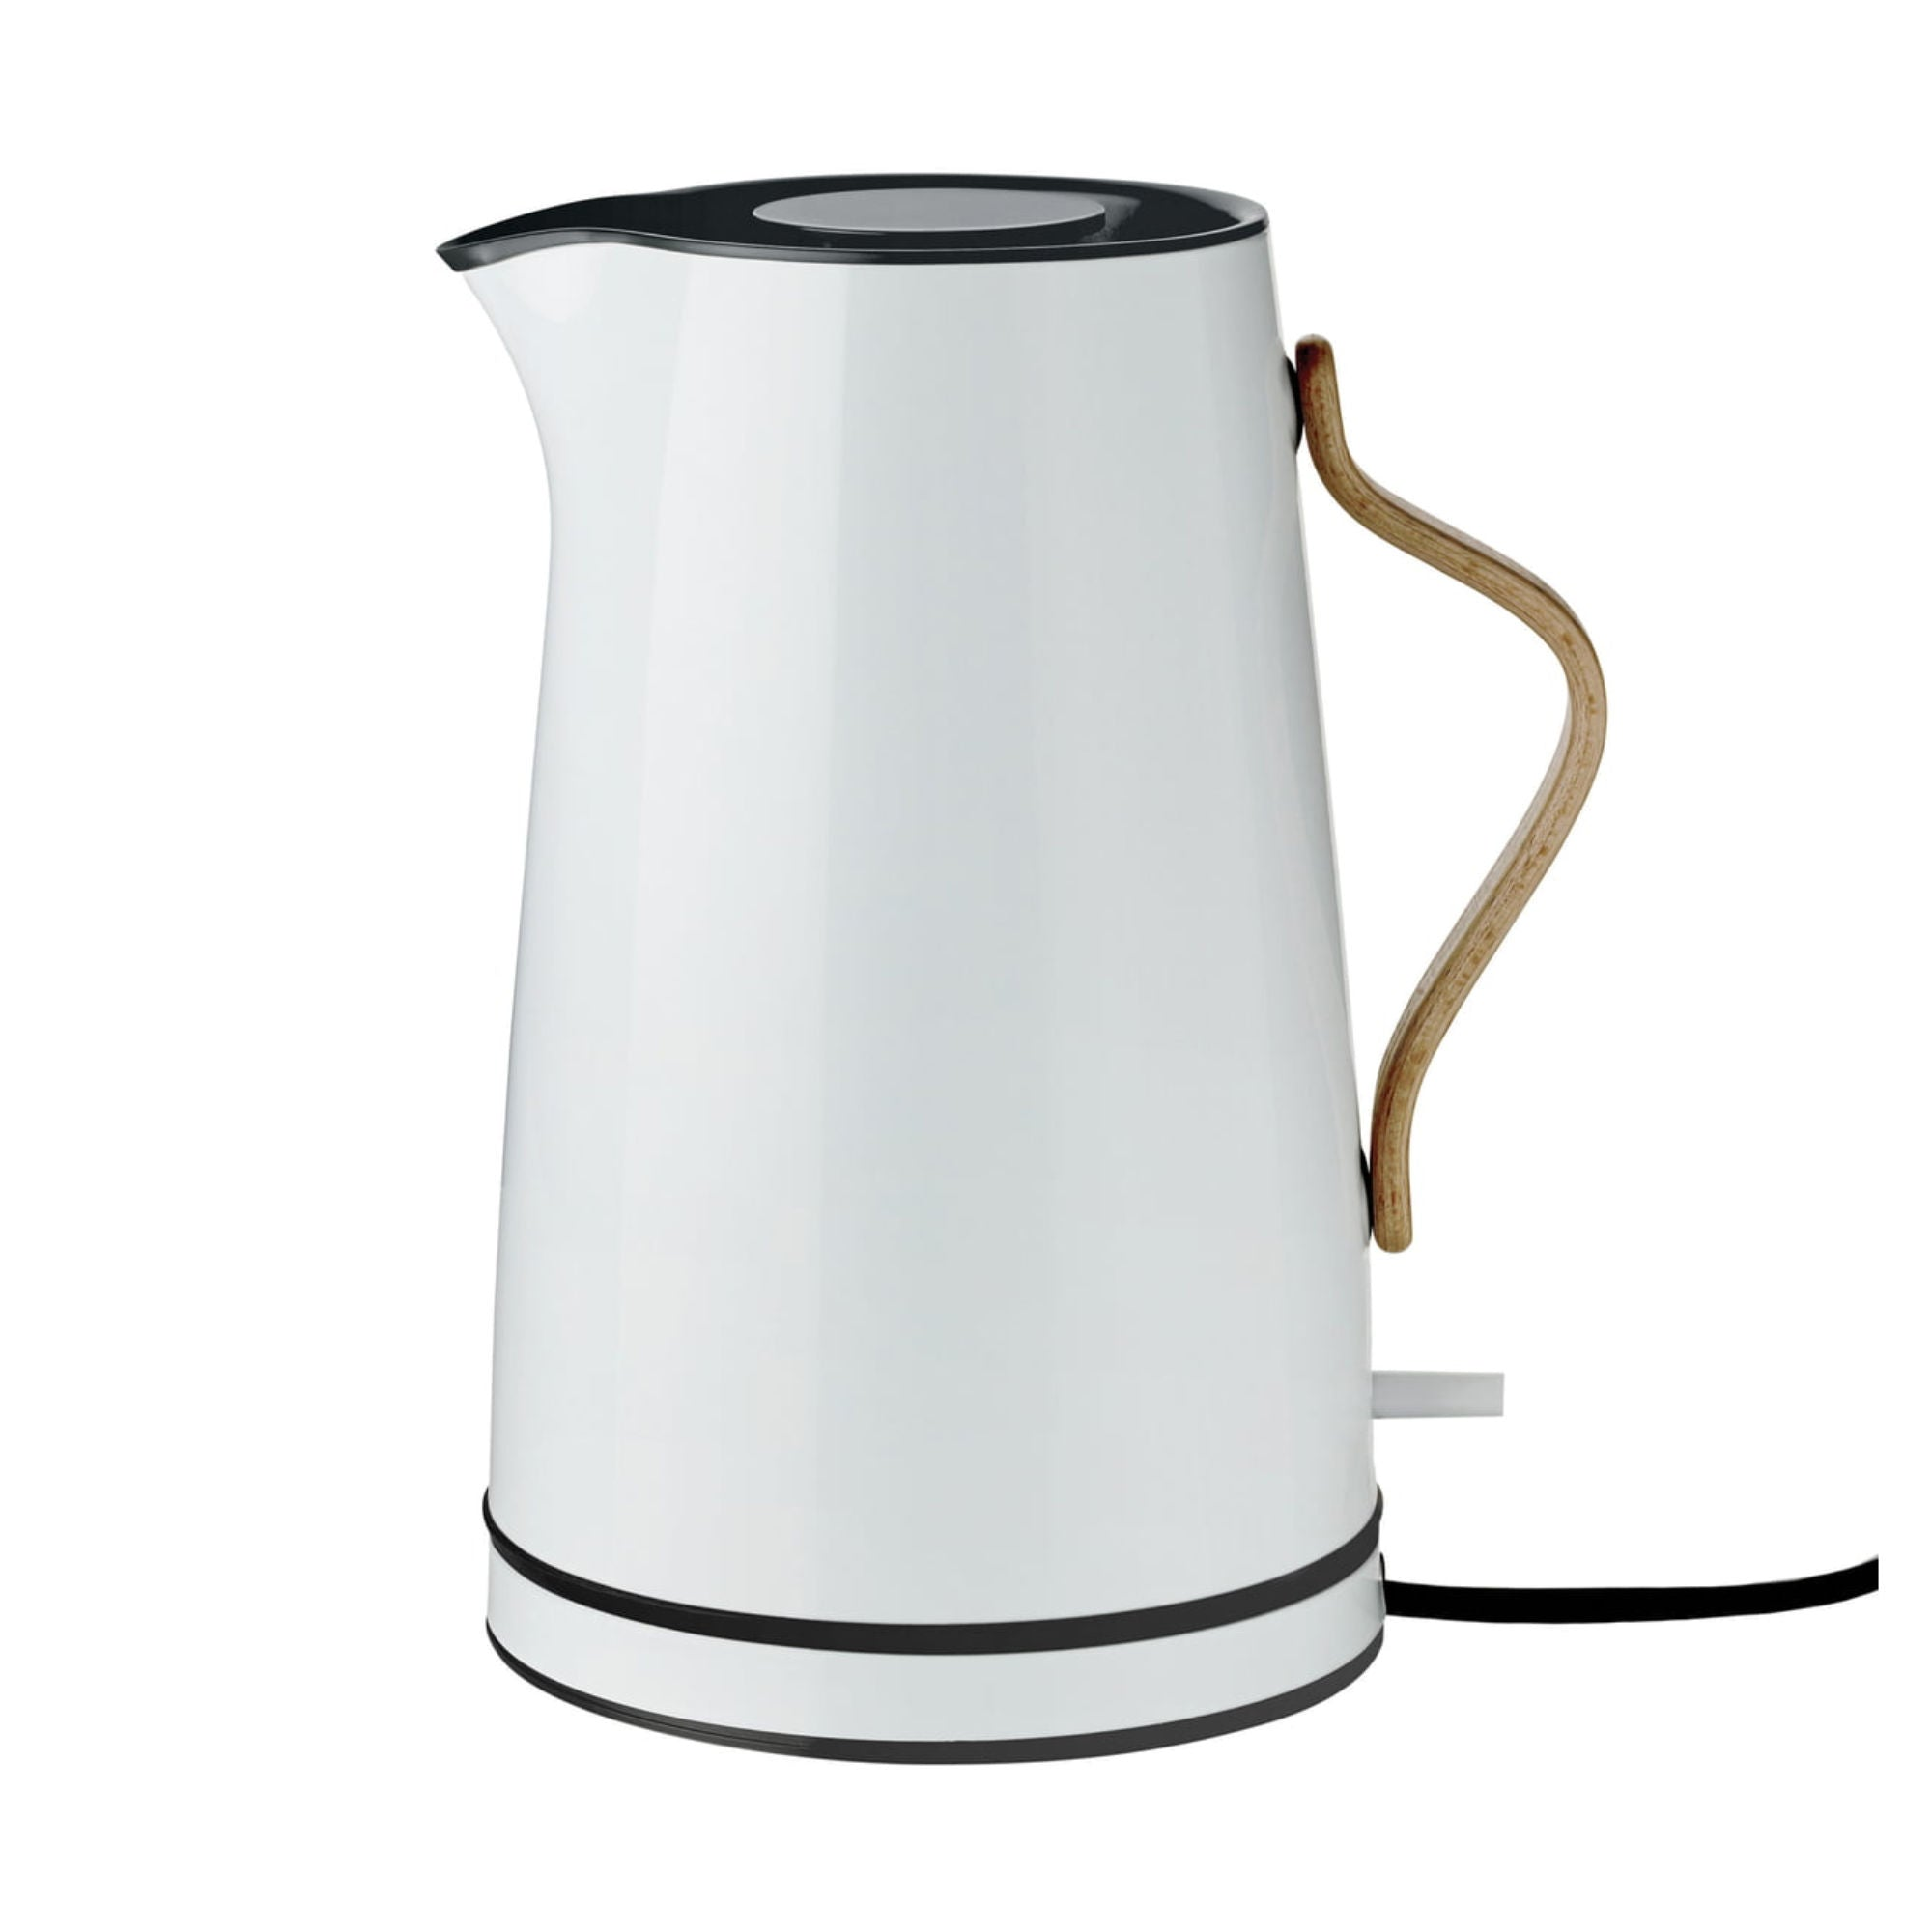 Stelton Emma Electric Kettle 1.2L , Light Blue